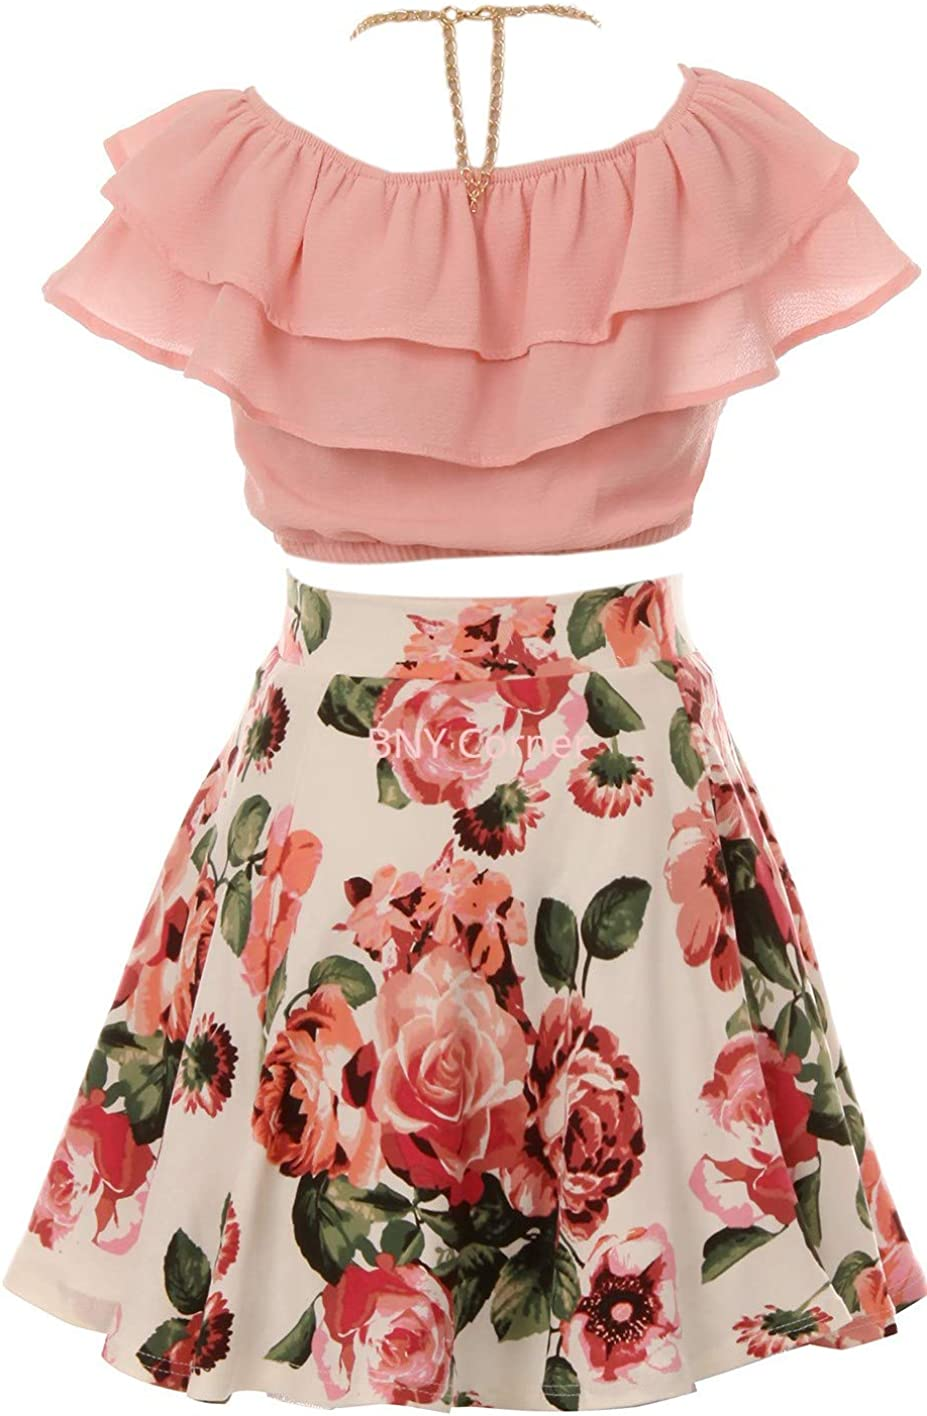 BNY Corner 3 Pieces Girls Ruffle Top Floral Skirt Party Clothing Dress Set